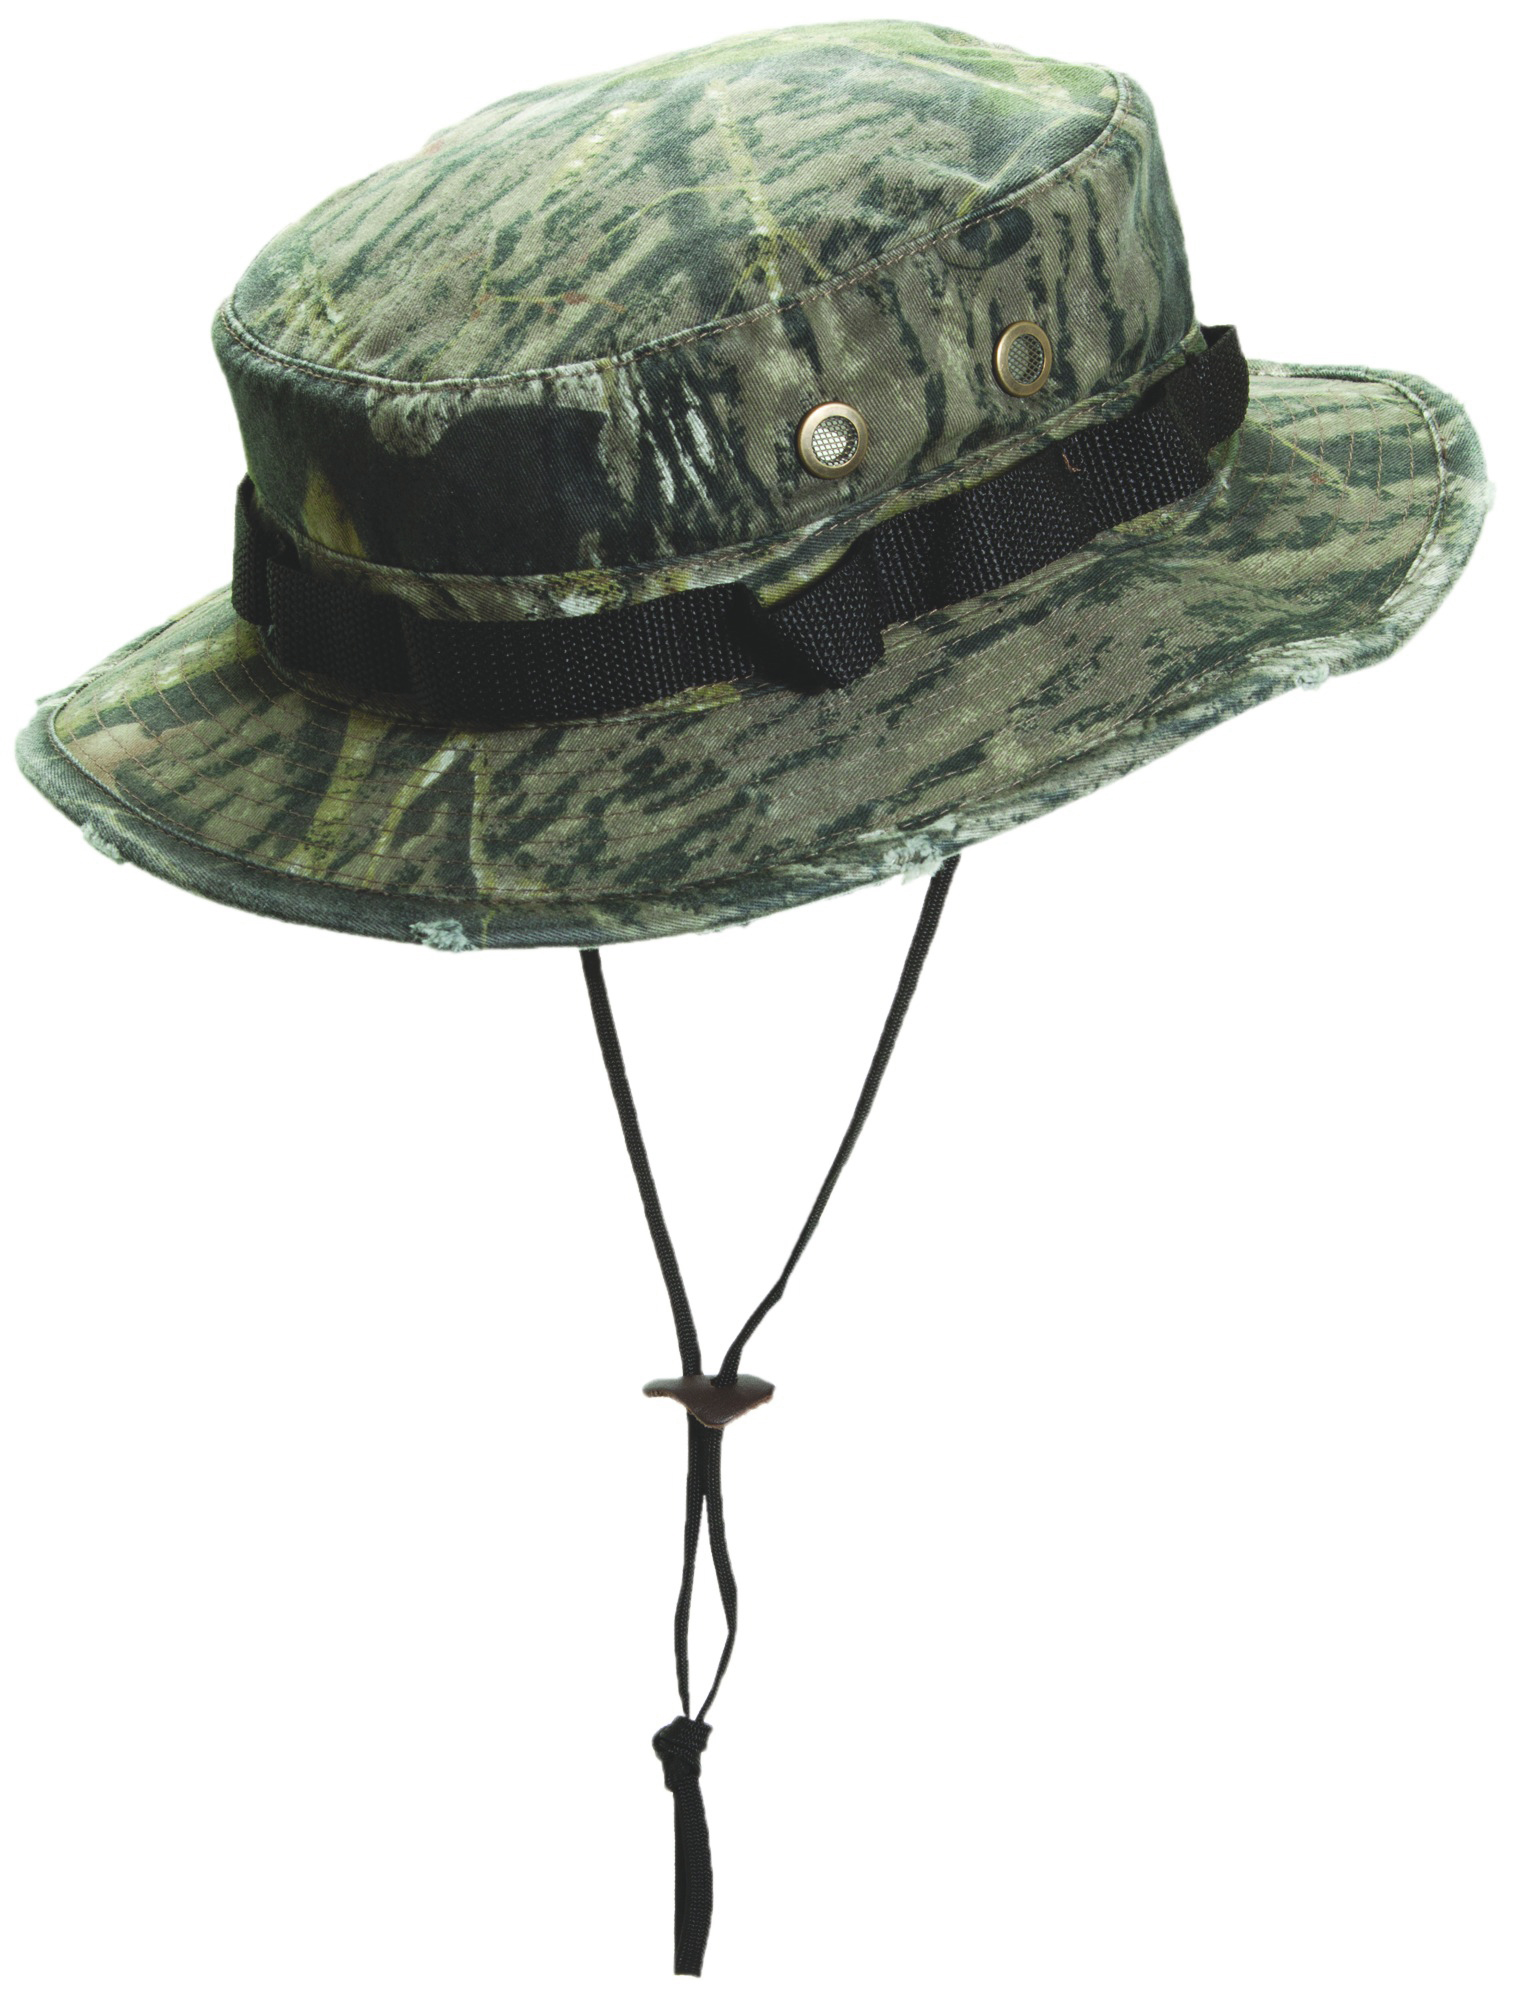 5226e6bc7bfeb Mossy Oak Boonie Hat with Web Trim